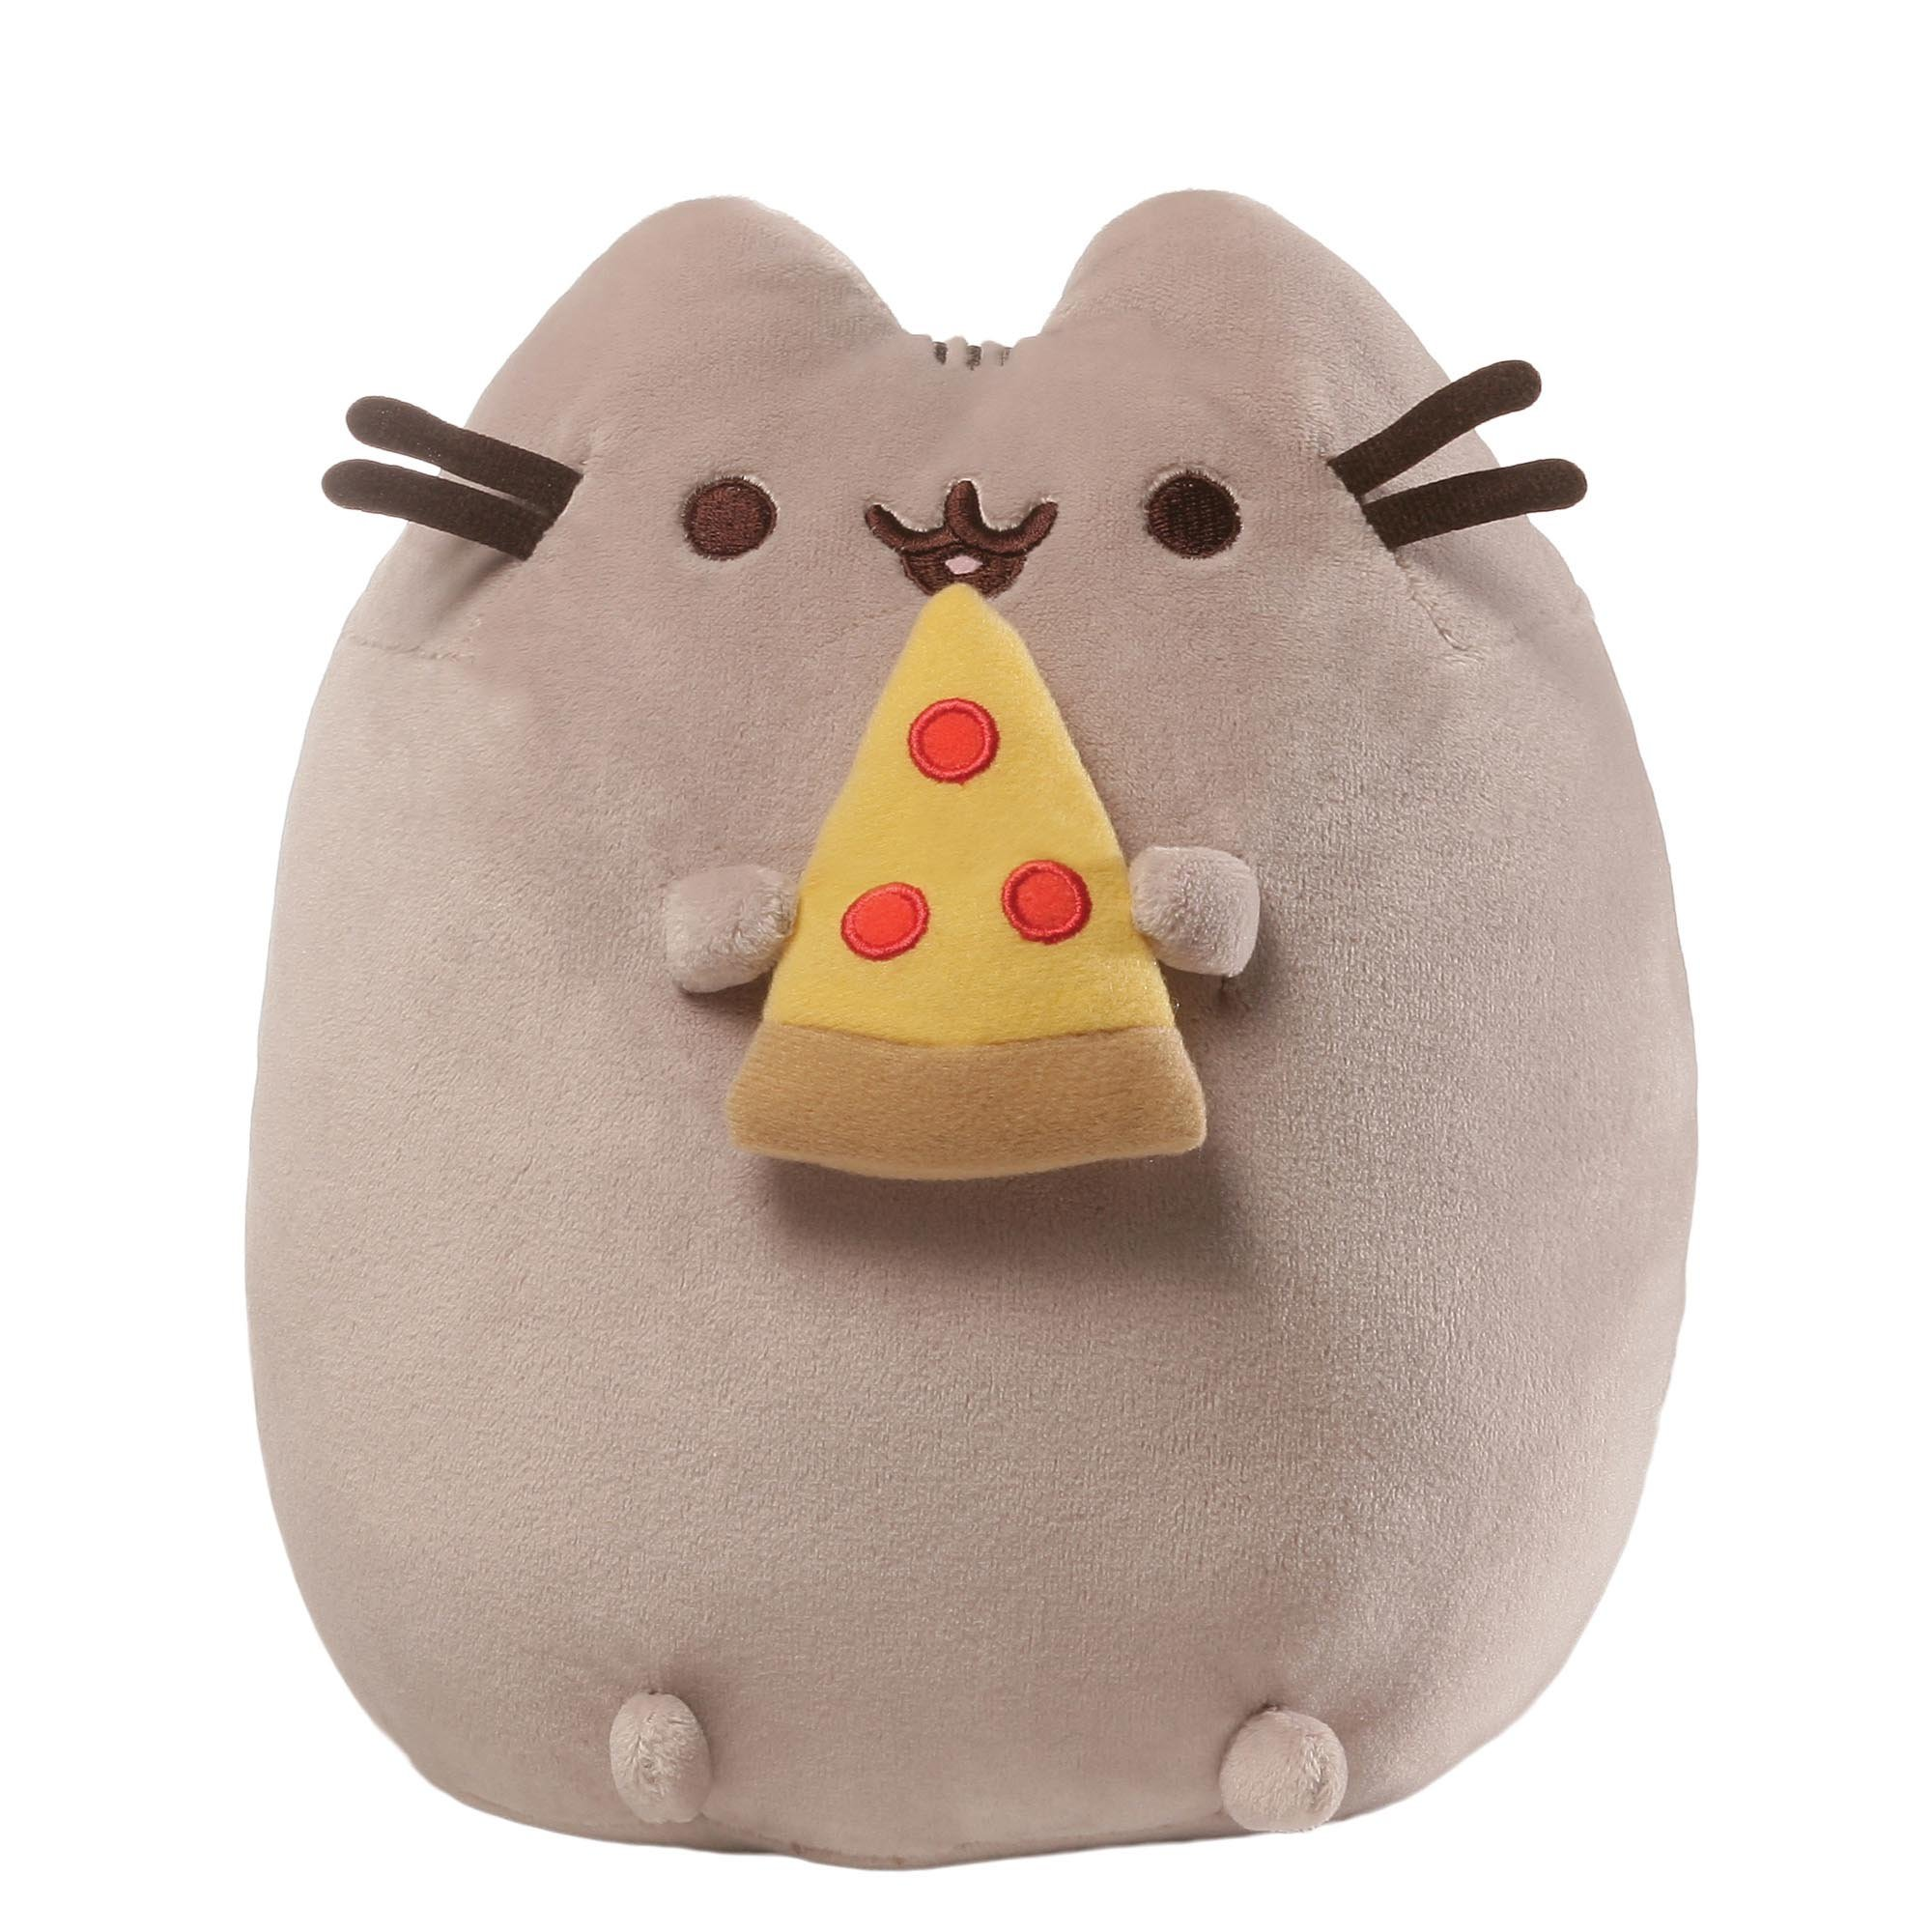 GUND Pusheen Snackable Pizza Stuffed Animal Cat Plush, 9.5""